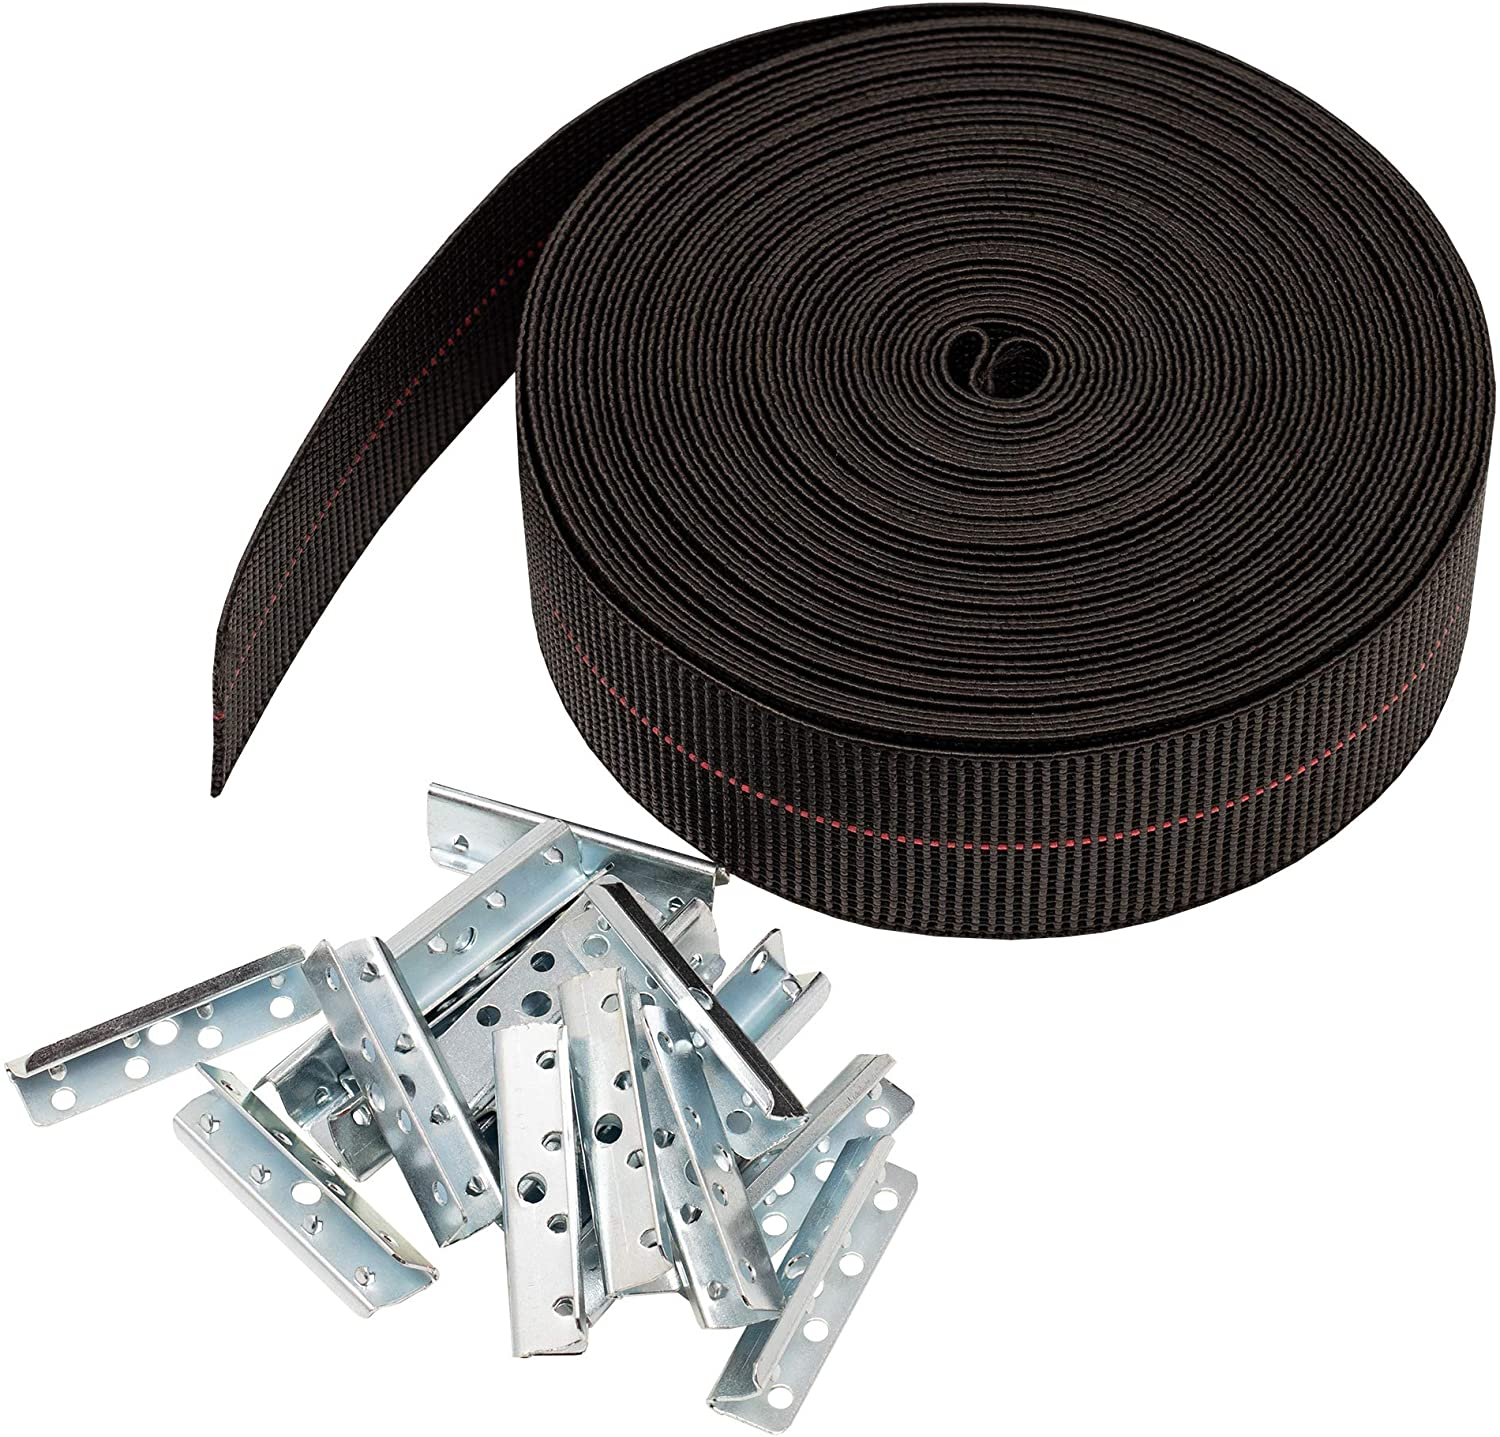 House2Home Elasbelt Webbing Kit, 2 Inch Wide x 40 Feet Long, Includes Metal End Clips and Installation Instructions